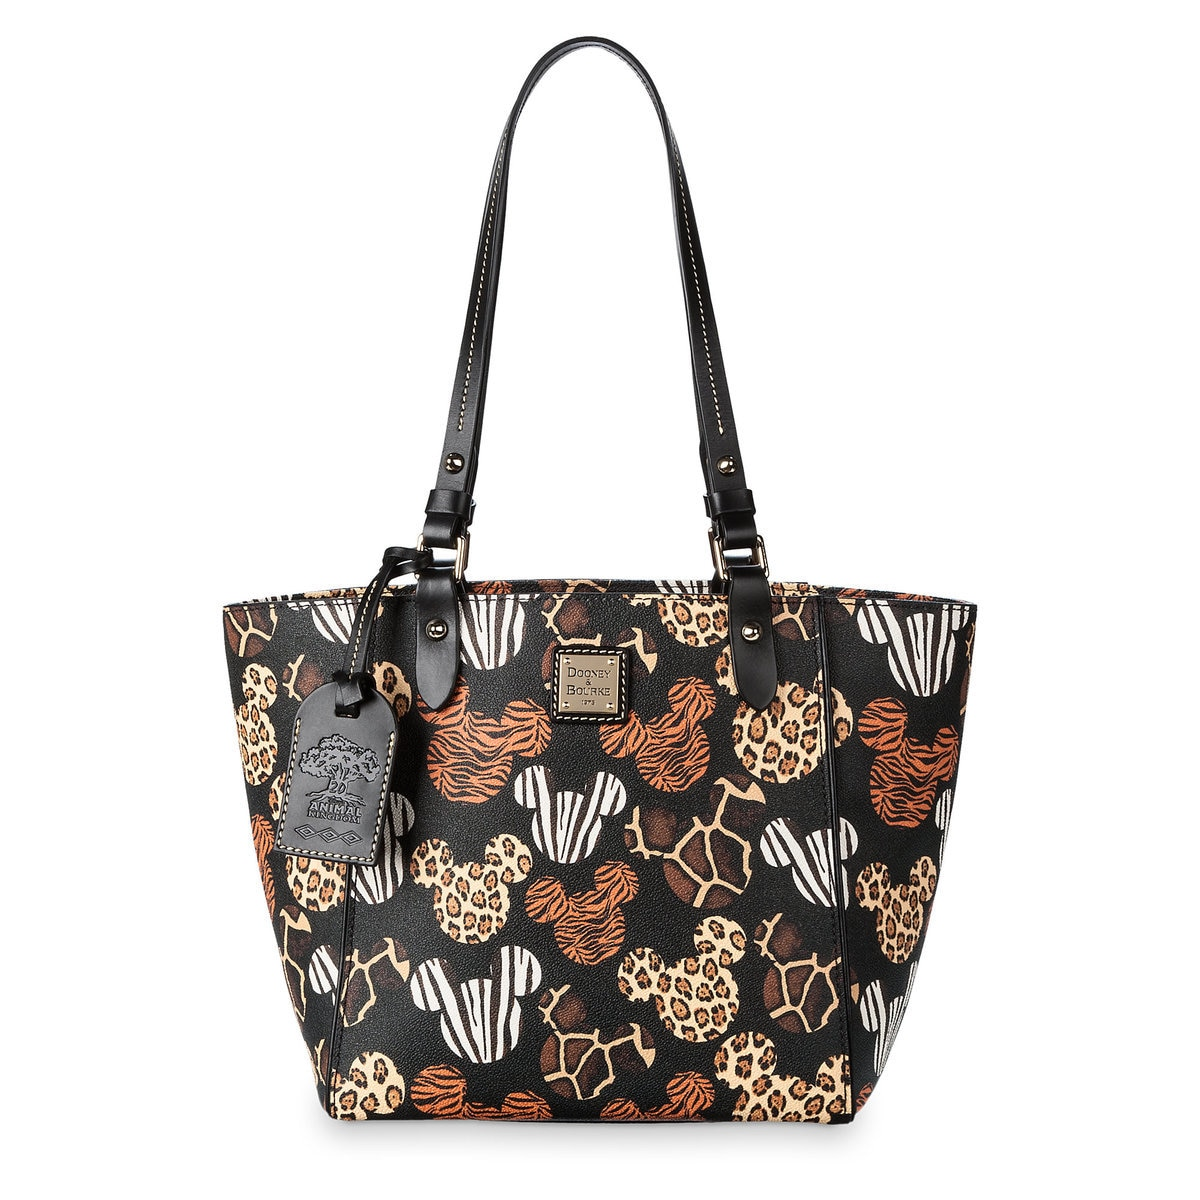 Mickey Mouse Disney S Animal Kingdom 20th Anniversary Tote By Dooney Bourke Large